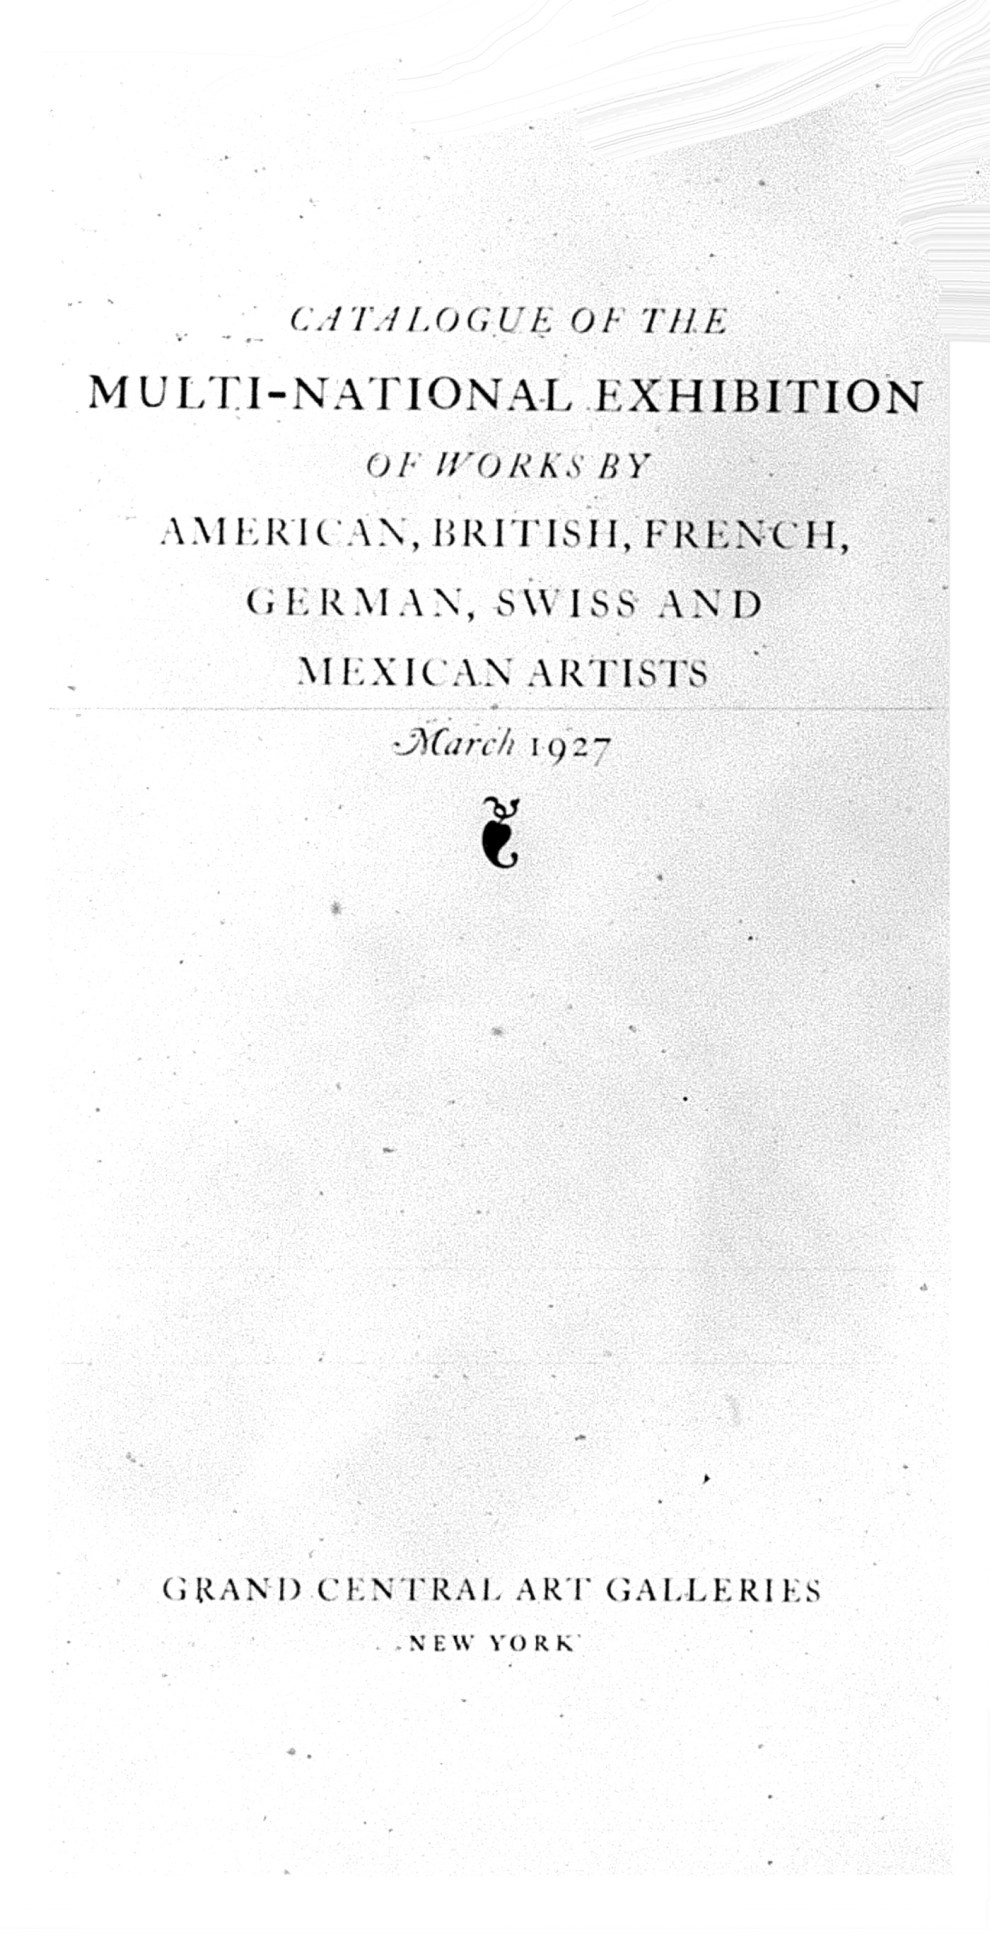 "Grand Central Art Galleries, New York, NY, ""The Multi-National Exhibition"", March, 1927; July-August, 1926, Berlin, National Gallery; September, 1926, Berne, Kunsthalle; December, 1926, London, Chenil Galleries; Paris, January, 1927, Bernheim Jeune Gallery."